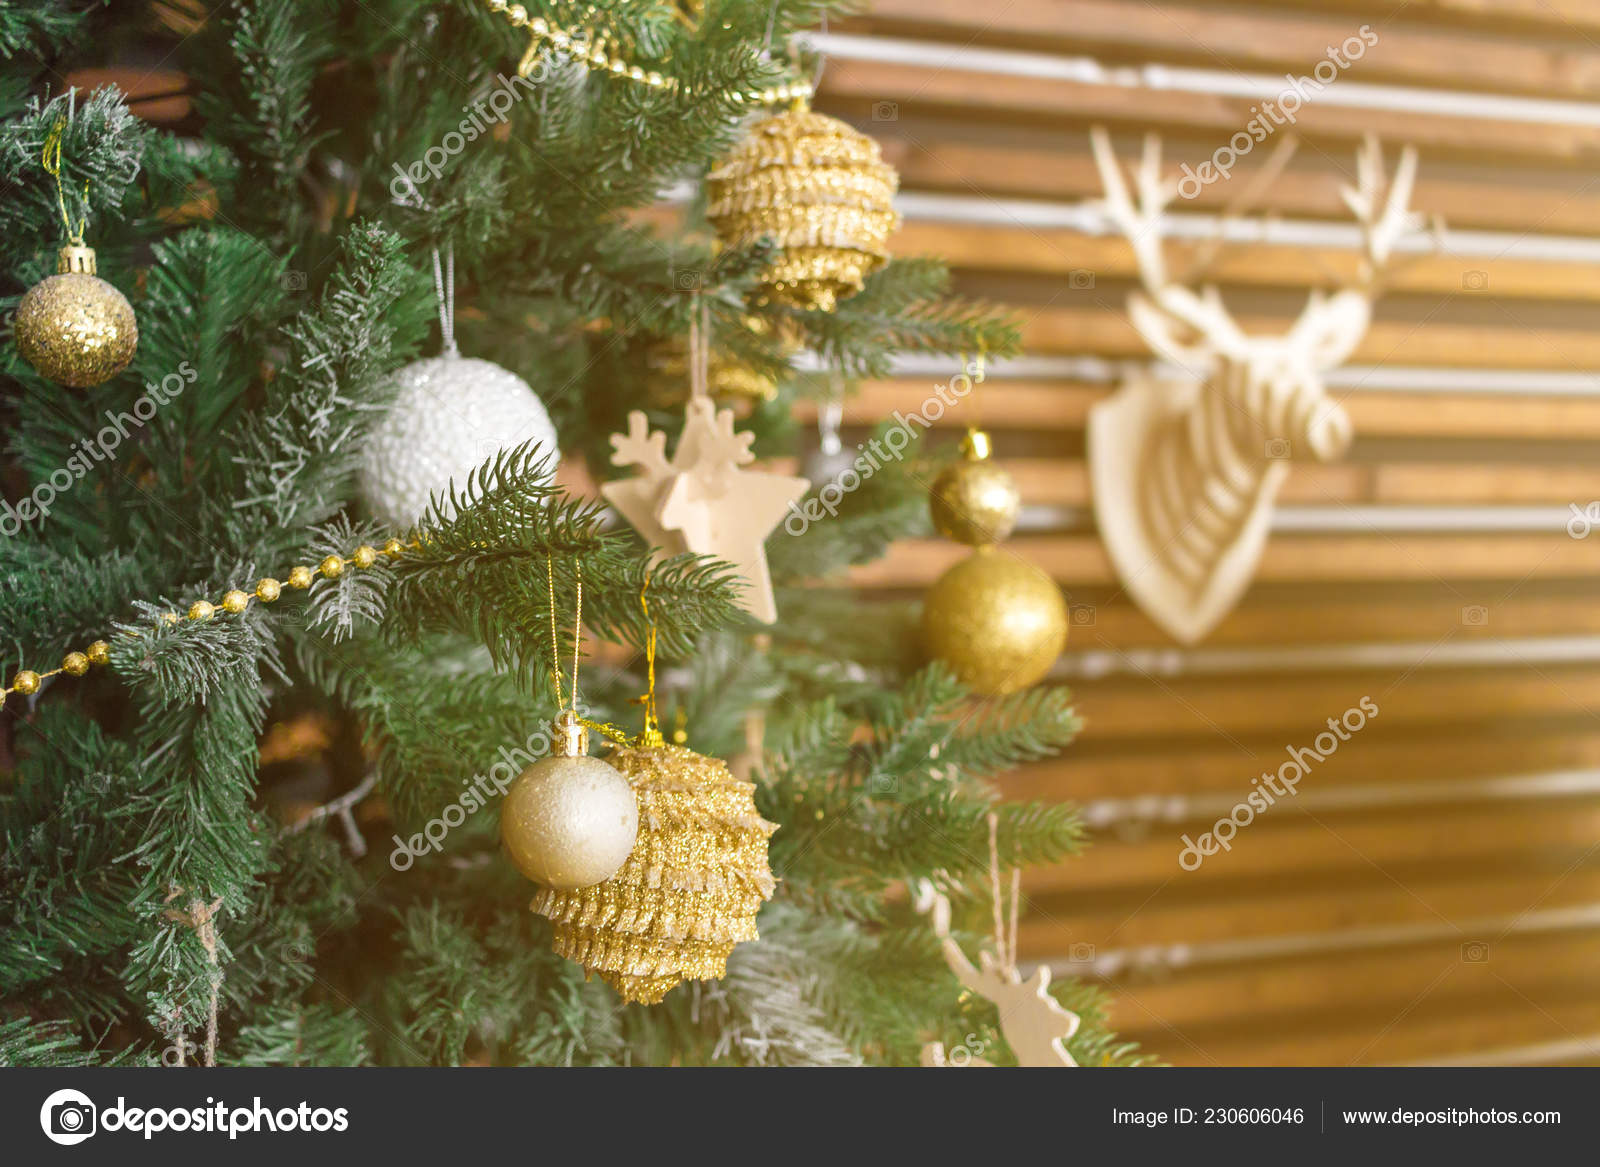 Christmas Tree With Golden Balls Star Other Decorations Deer Head Model On The Wall As Background New Year Theme Concept Sun Shining Orange Toned Stock Photo C Axivan 230606046